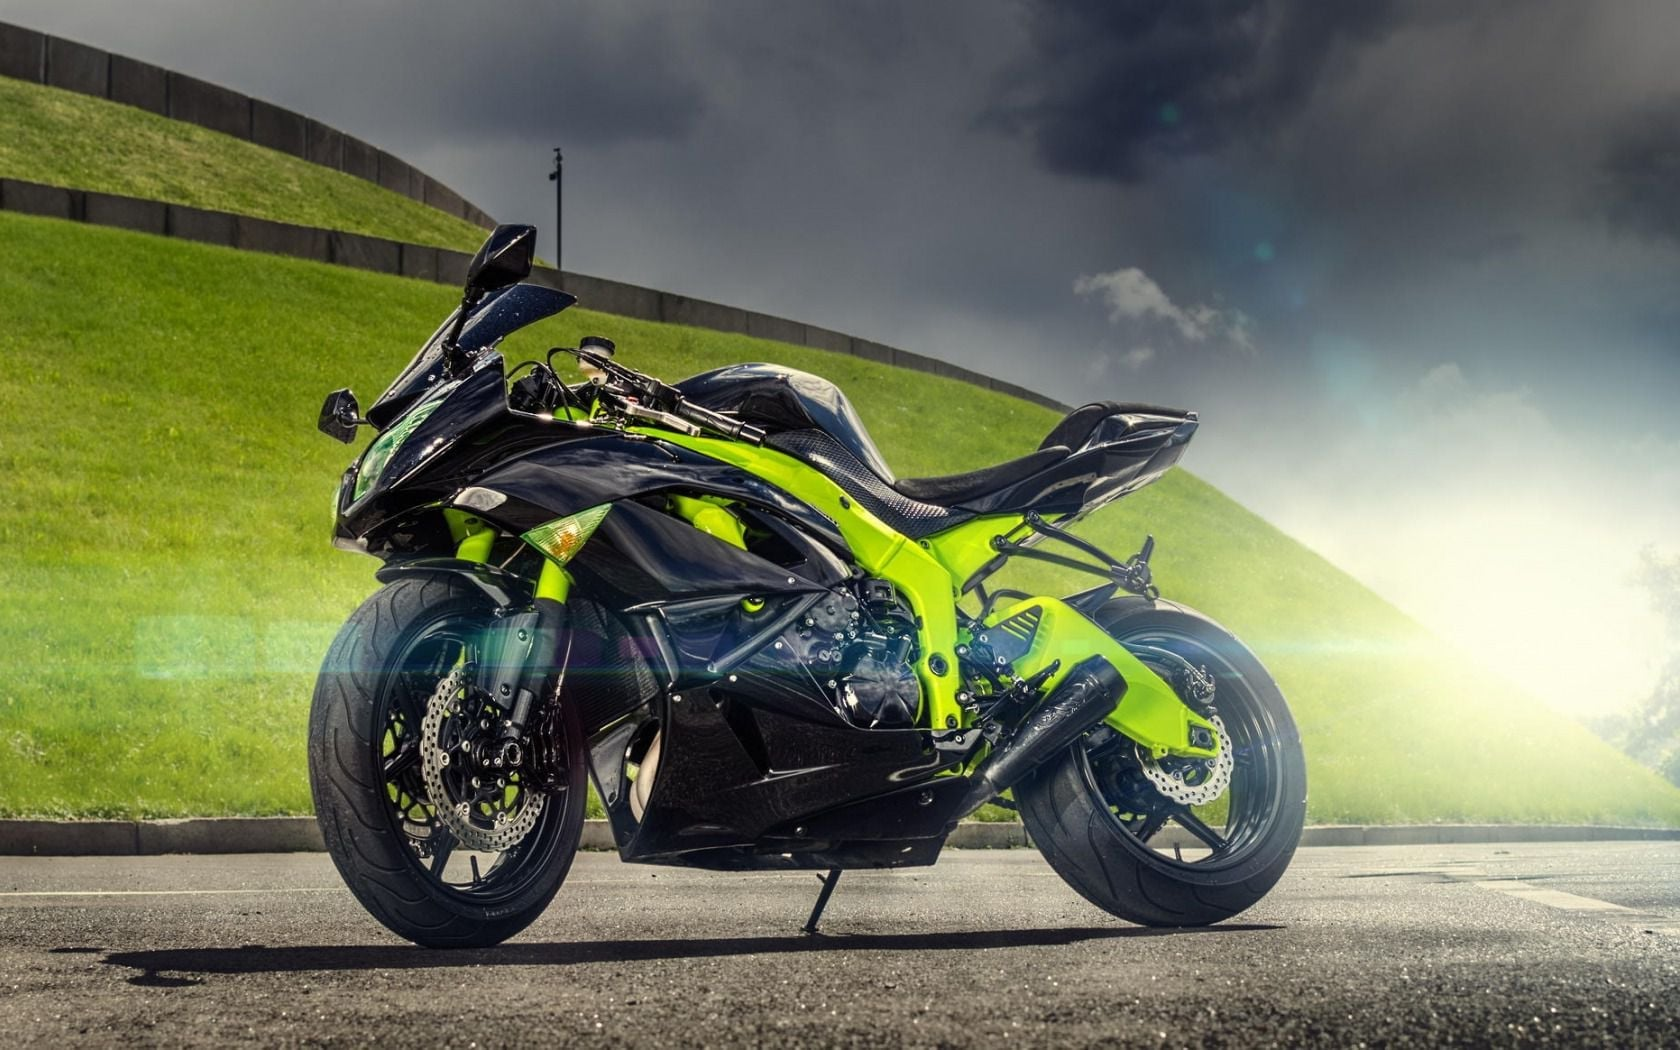 Zx6r HD Widescreen Backgrounds DSC100816565jpg 1680x1050